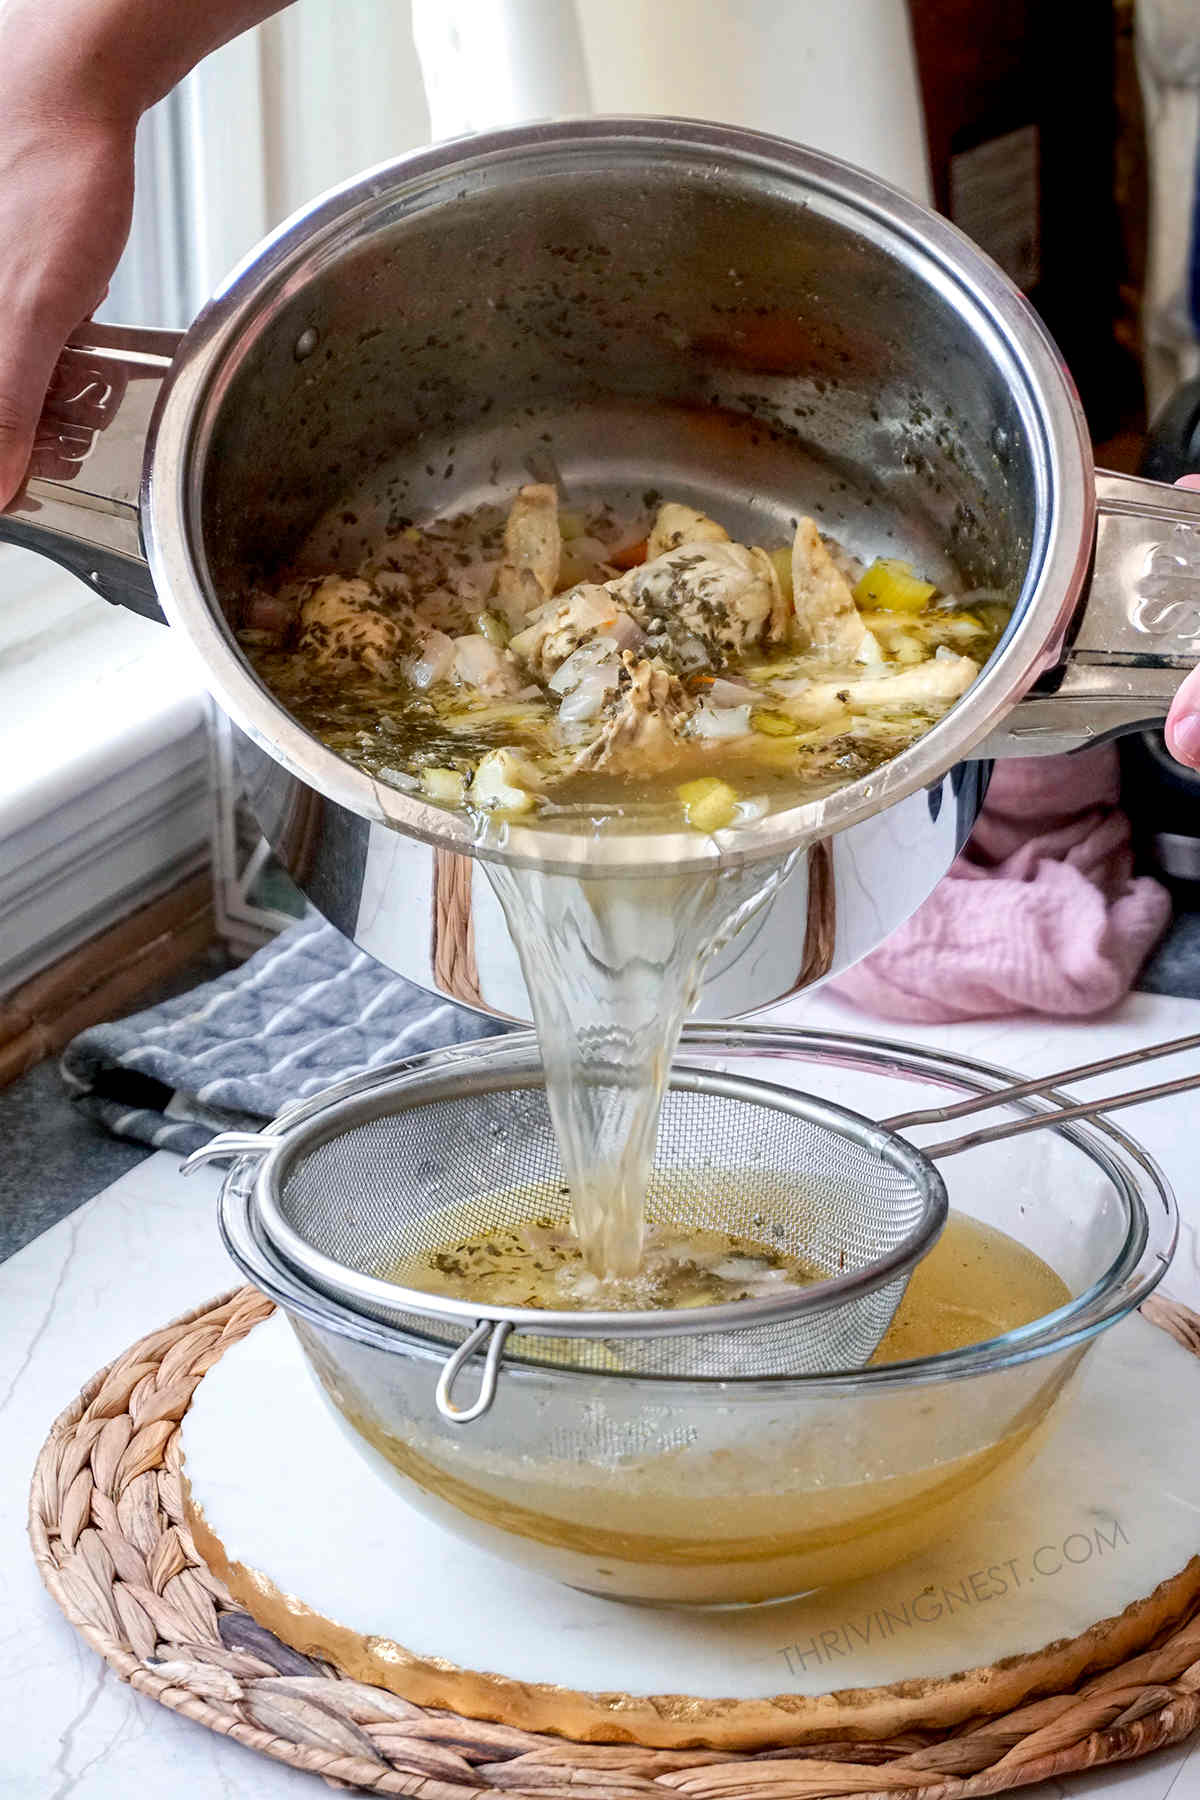 Chicken stock or chicken broth strained and poured in a bowl.